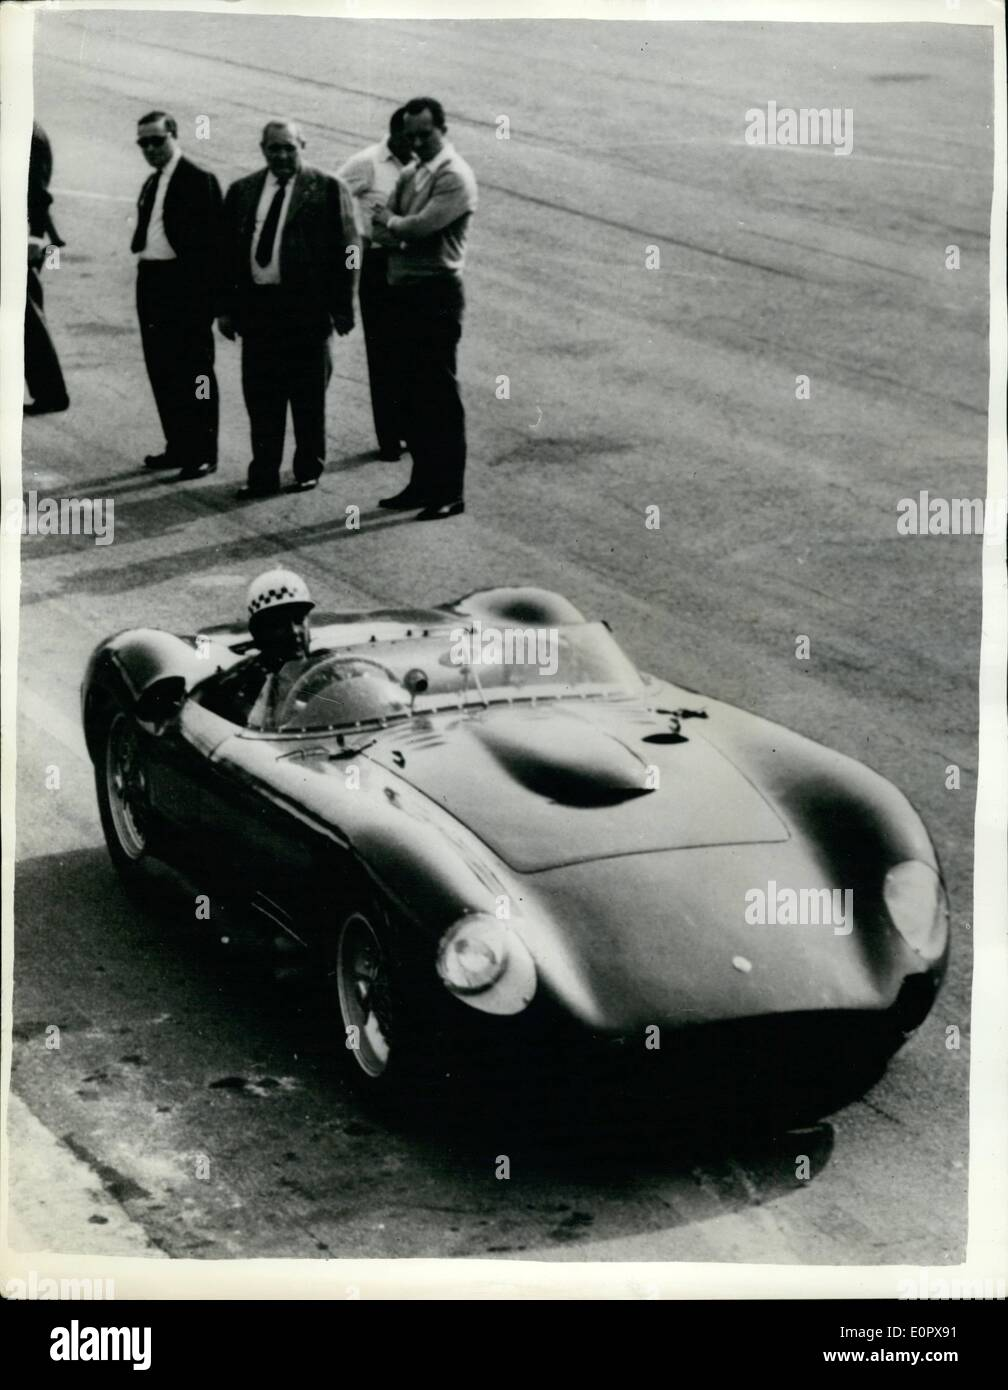 Apr. 04, 1957 - Jean Behra practises for the ''Mille Miglia'' in new Maserati.: French racing driver, jean Behra, who recenlty won the Grand Prix of Pau - seen seating off for a practise run on the Monza track, near Milan, in the new 8-cyclinder Maserati, in which he will compete in the forthcoming ''Mille Miglia'' race. - Stock Image